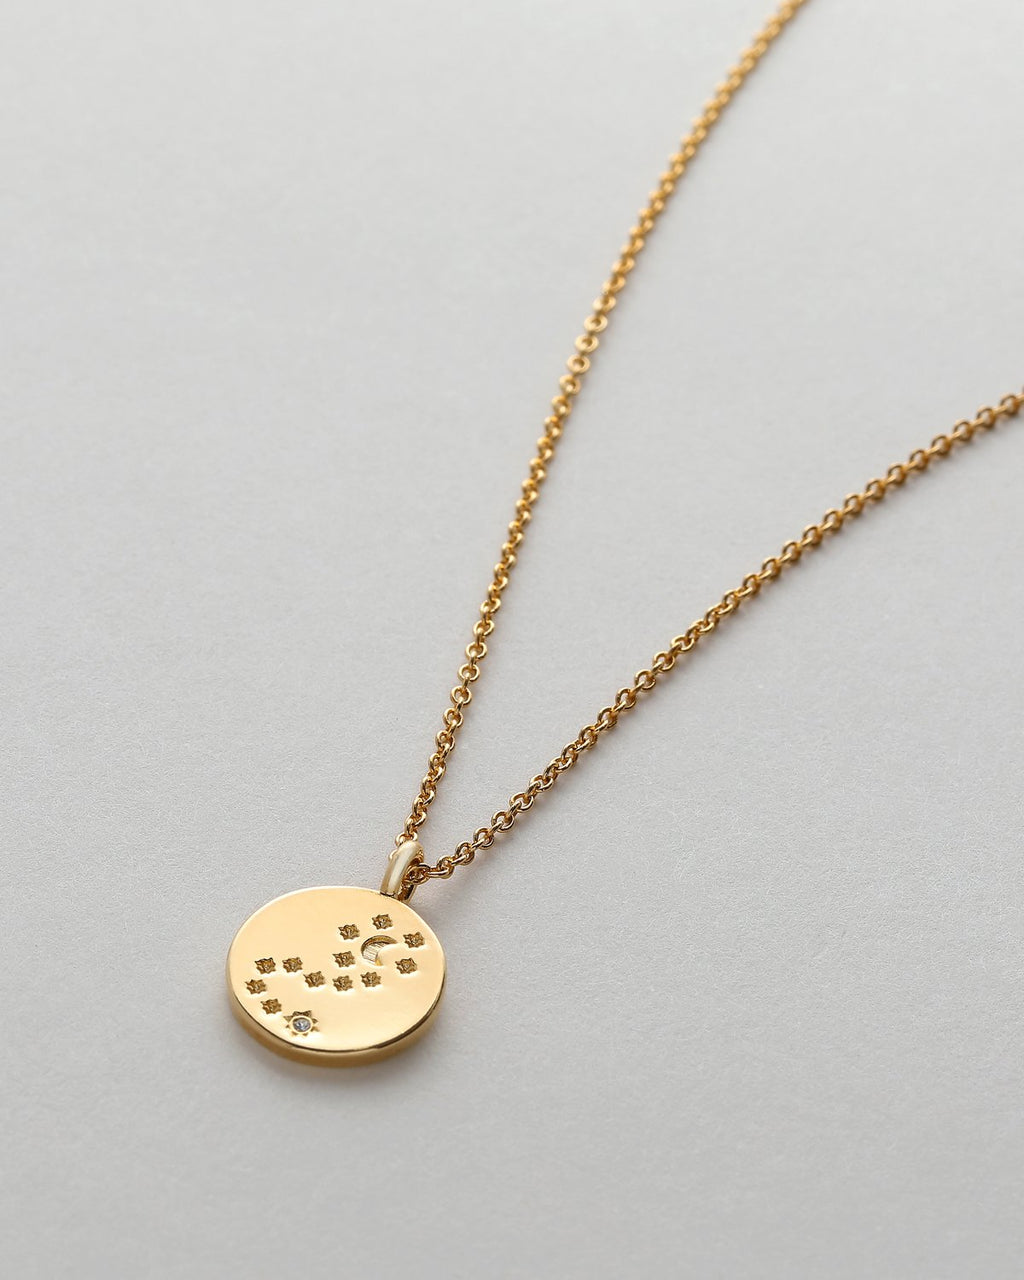 To The Moon & Back Necklace - 14k Gold